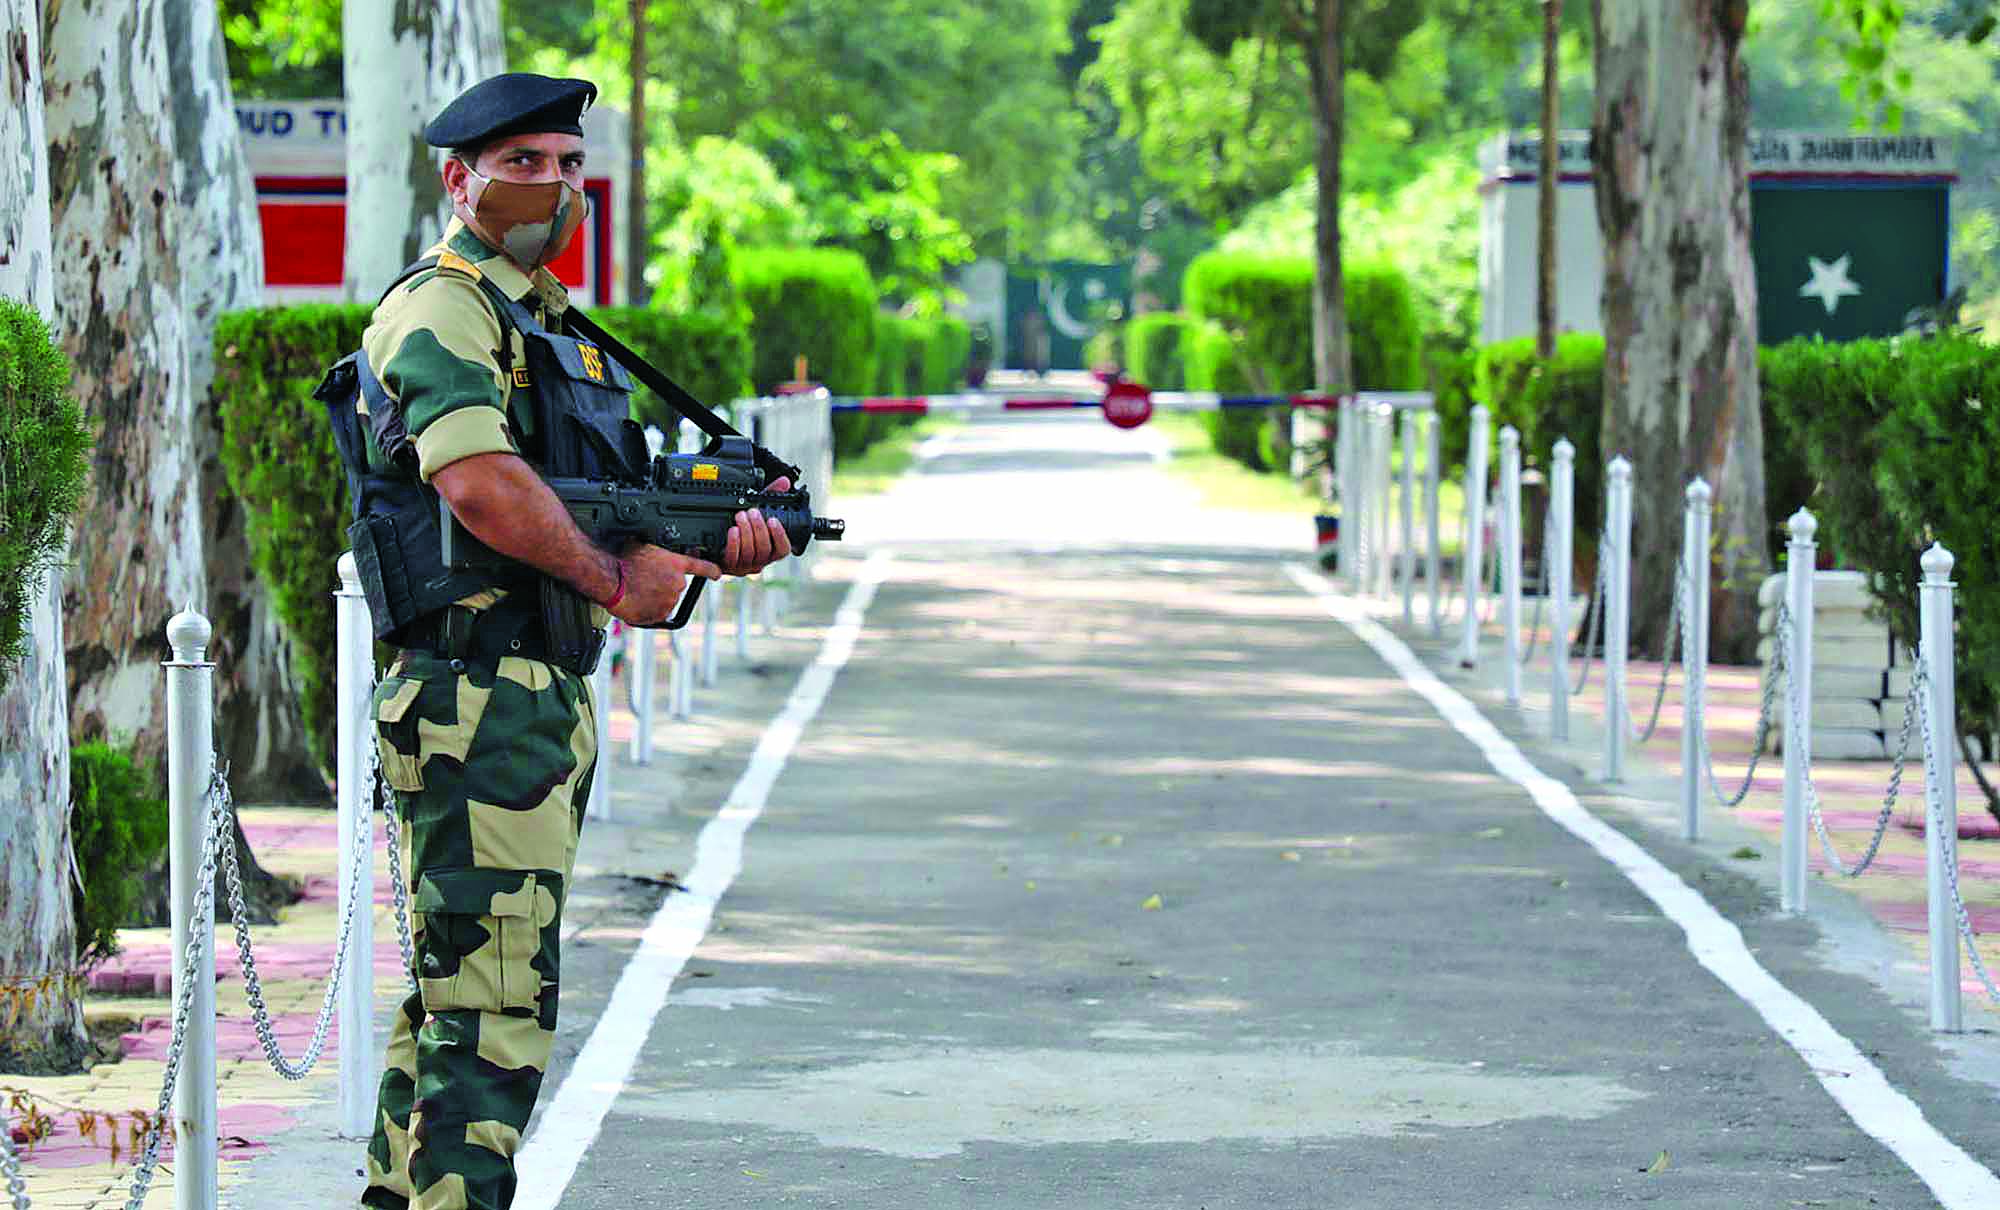 BSF-personnel-stand-guard-at-international-border-Octroi-post-in-Suchetgarh-02.jpg